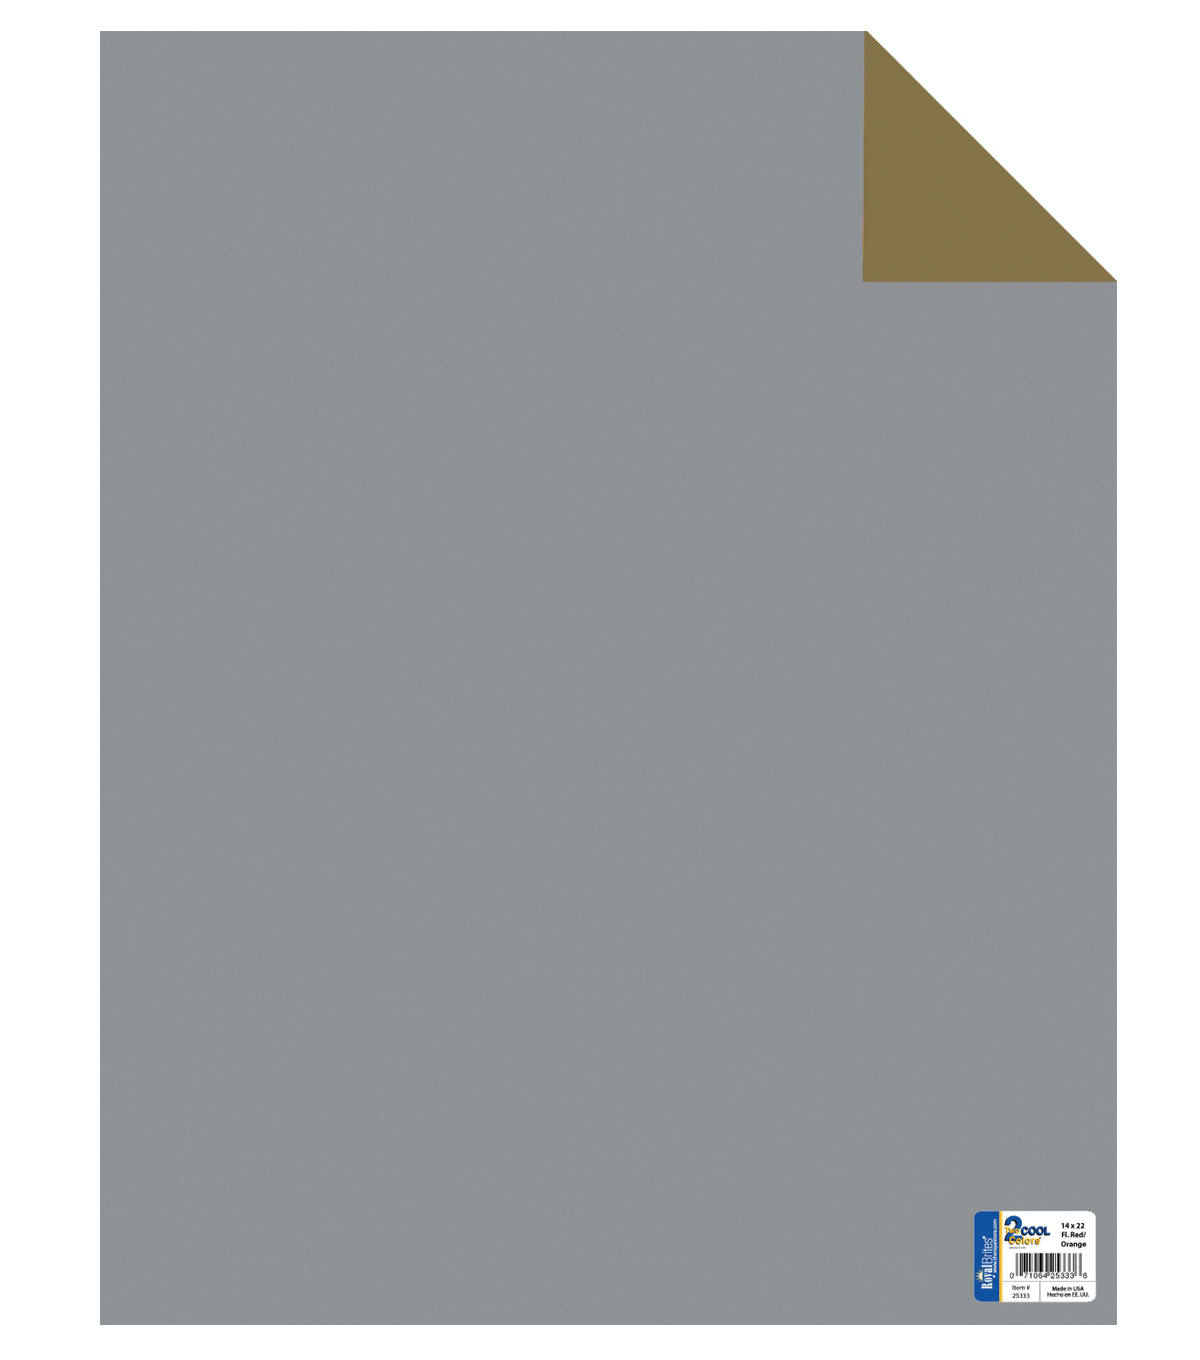 Royal Lace-Posterboard Double-Sided 22\u0022X28\u0022-Gold/Silver